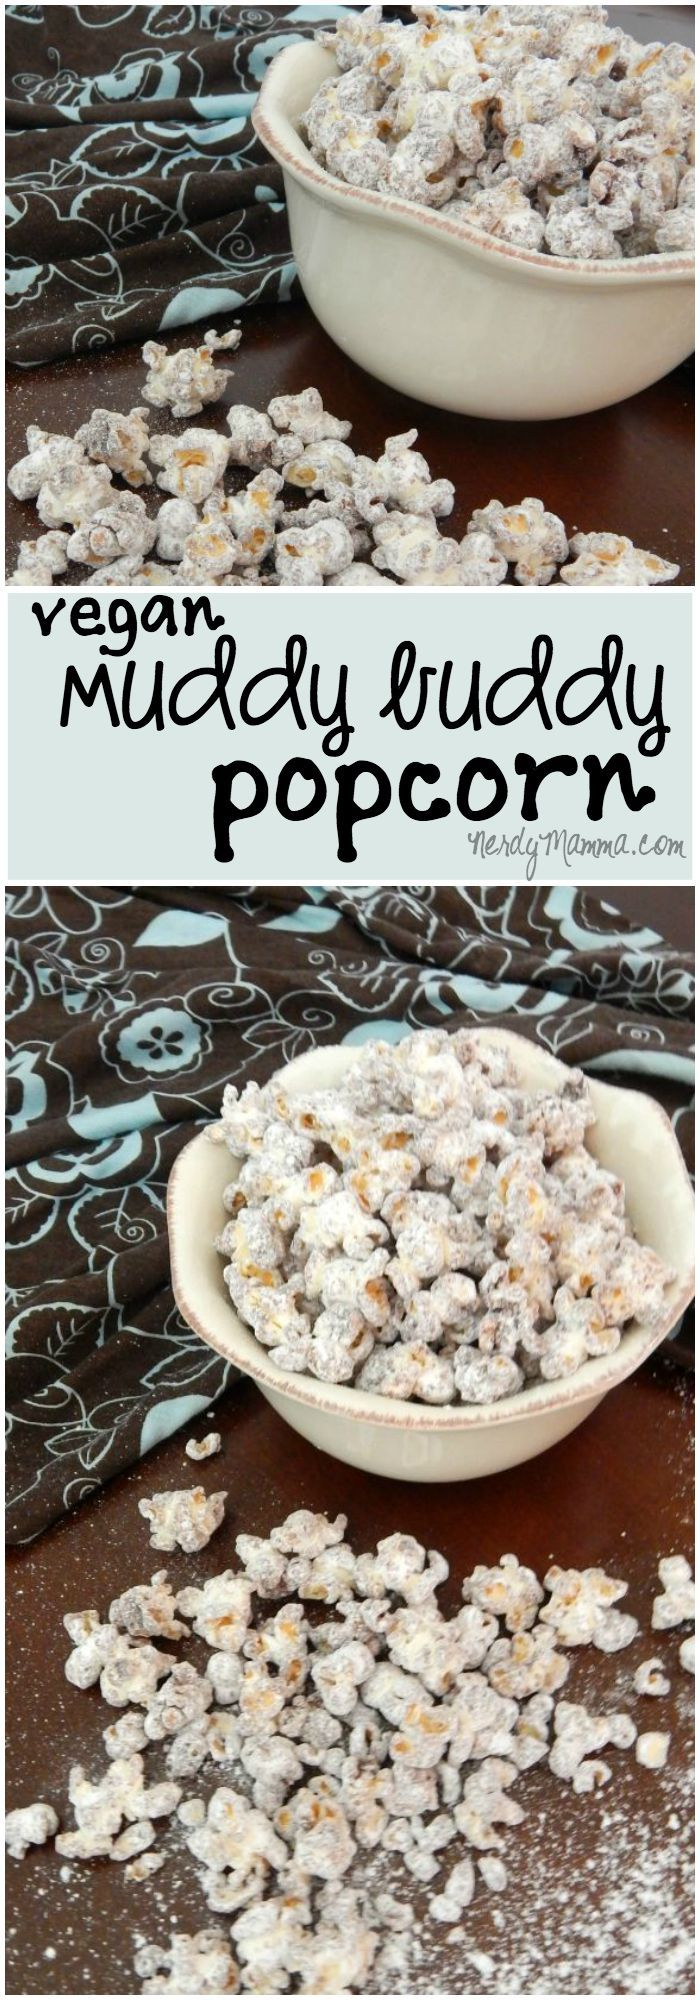 This popcorn recipe is the perfect vegan alternative to muddy buddies! Dairy-Free and Nut-Free, it's so good...